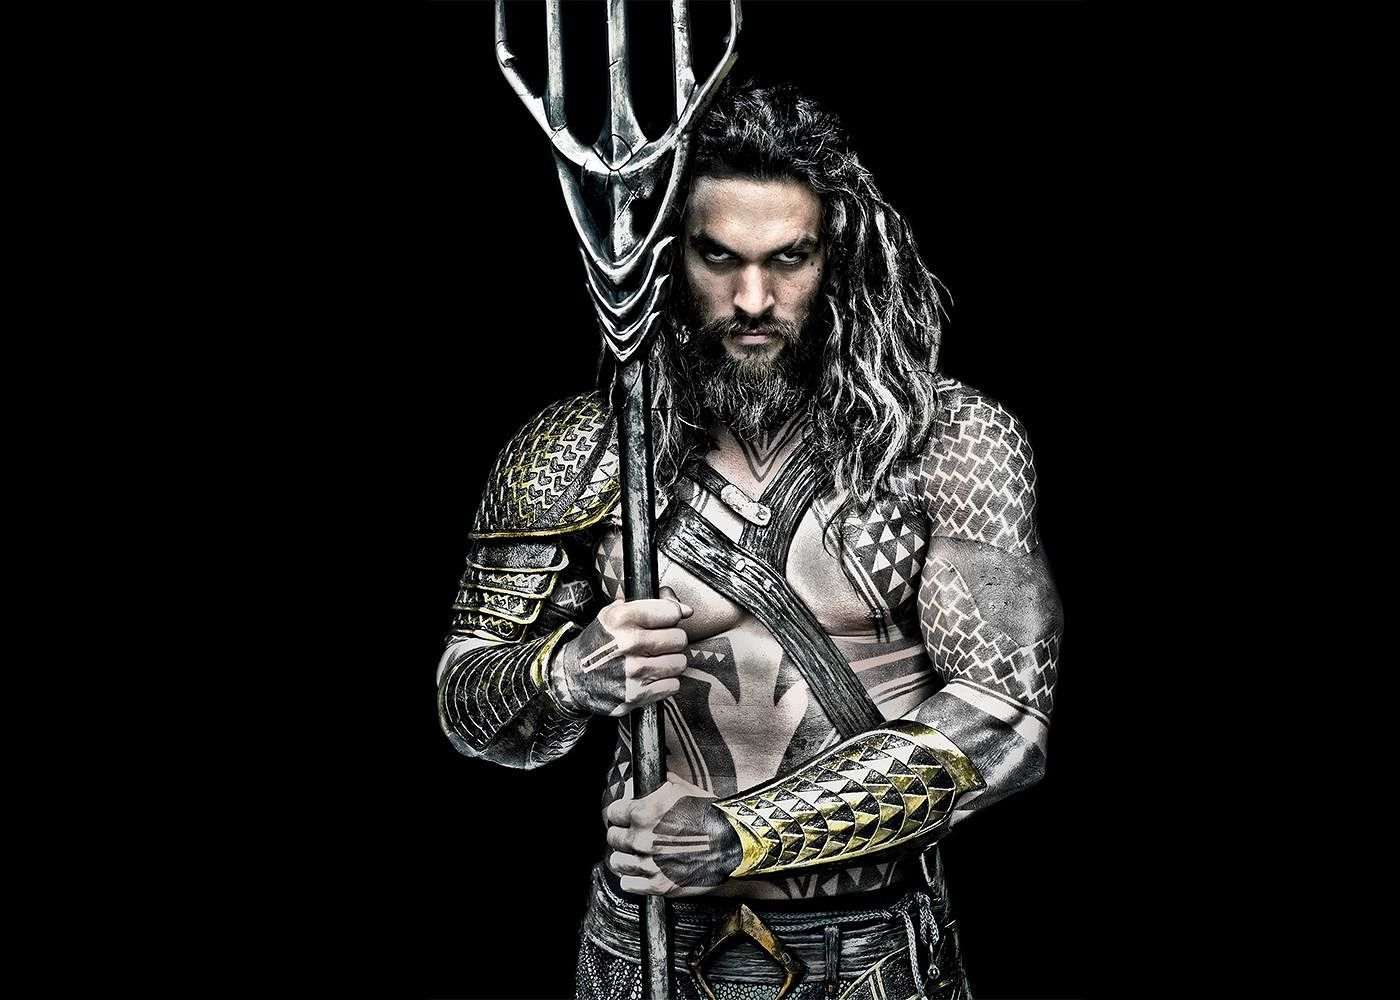 #ReleasetheSnyderCut: Jason Momoa Hints that Zack Snyder has Finished His Version of Justice League